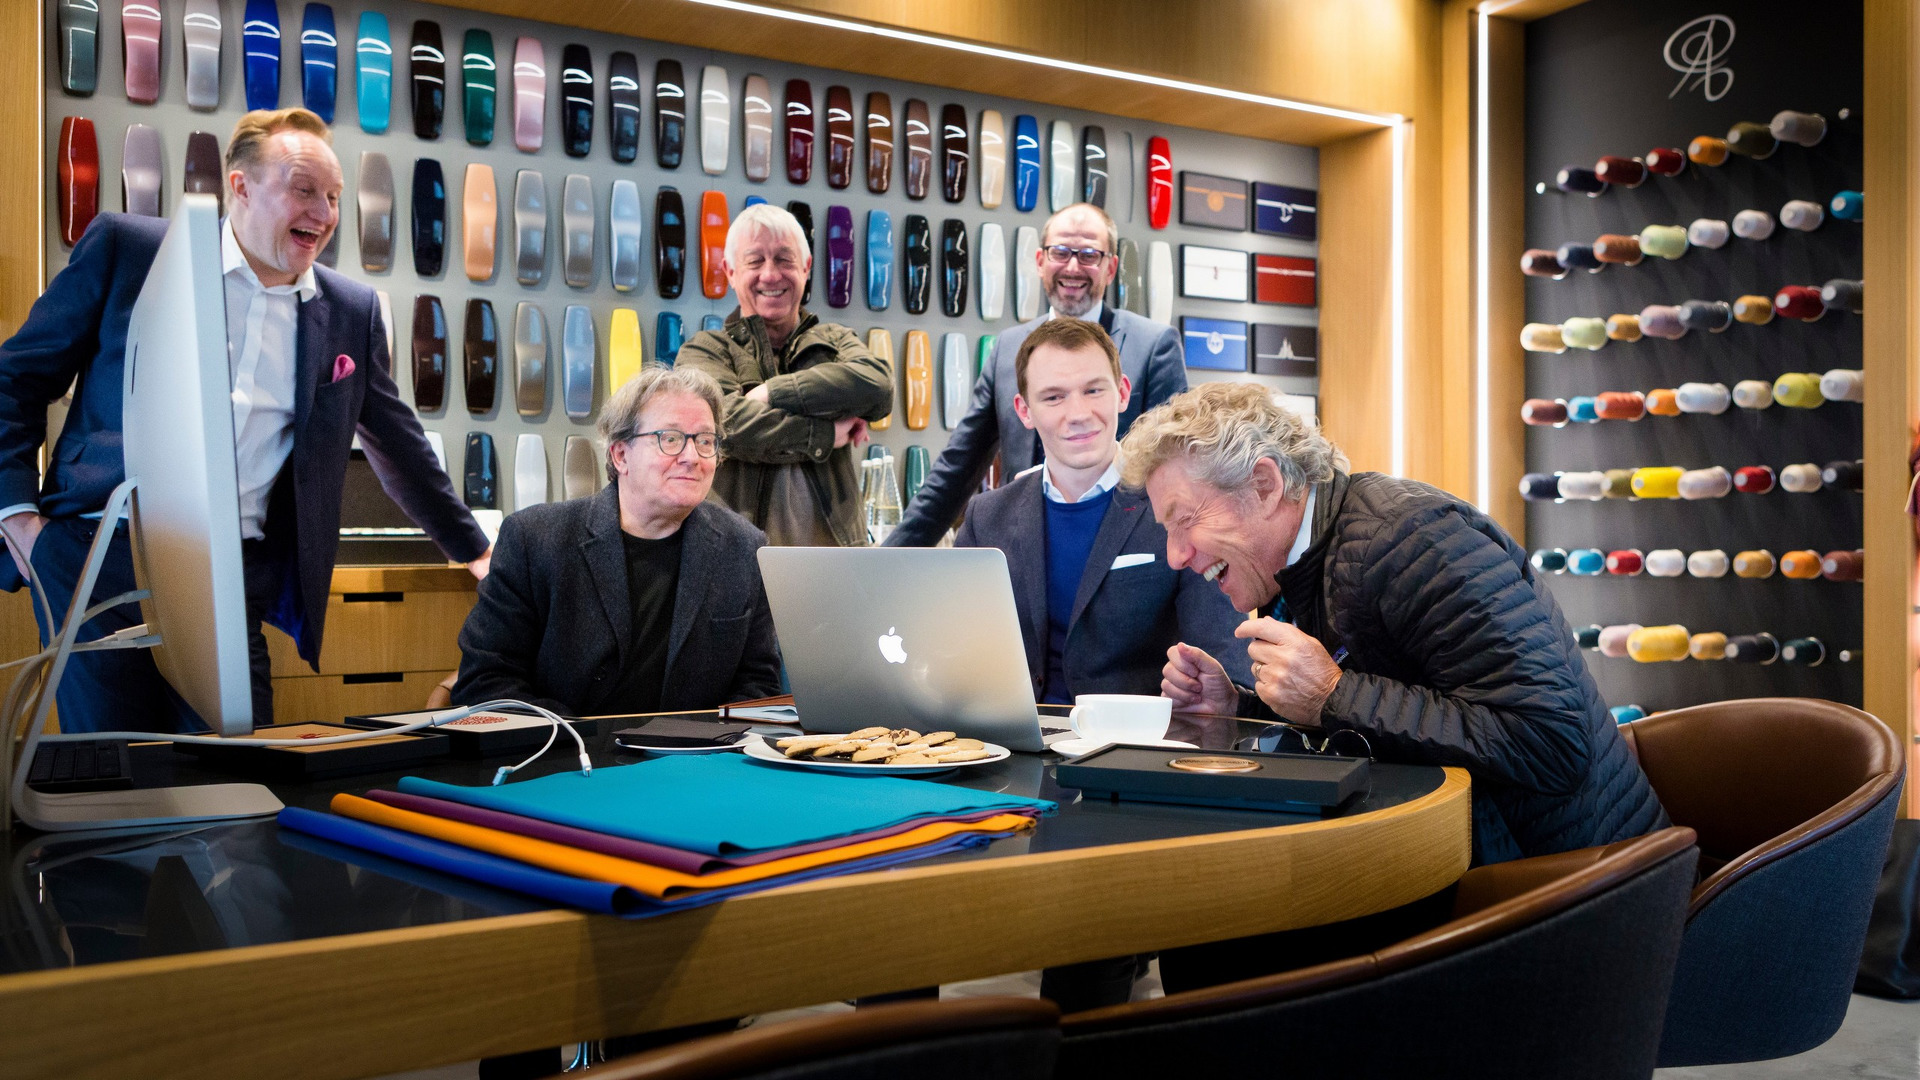 Rock star and Who front man, Roger Daltrey visits the home of Rolls-Royce Motor Cars at Goodwood, West Sussex.  Picture date: Wednesday November 23, 2016. Photograph by Christopher Ison © 07544044177 chris@christopherison.com www.christopherison.com